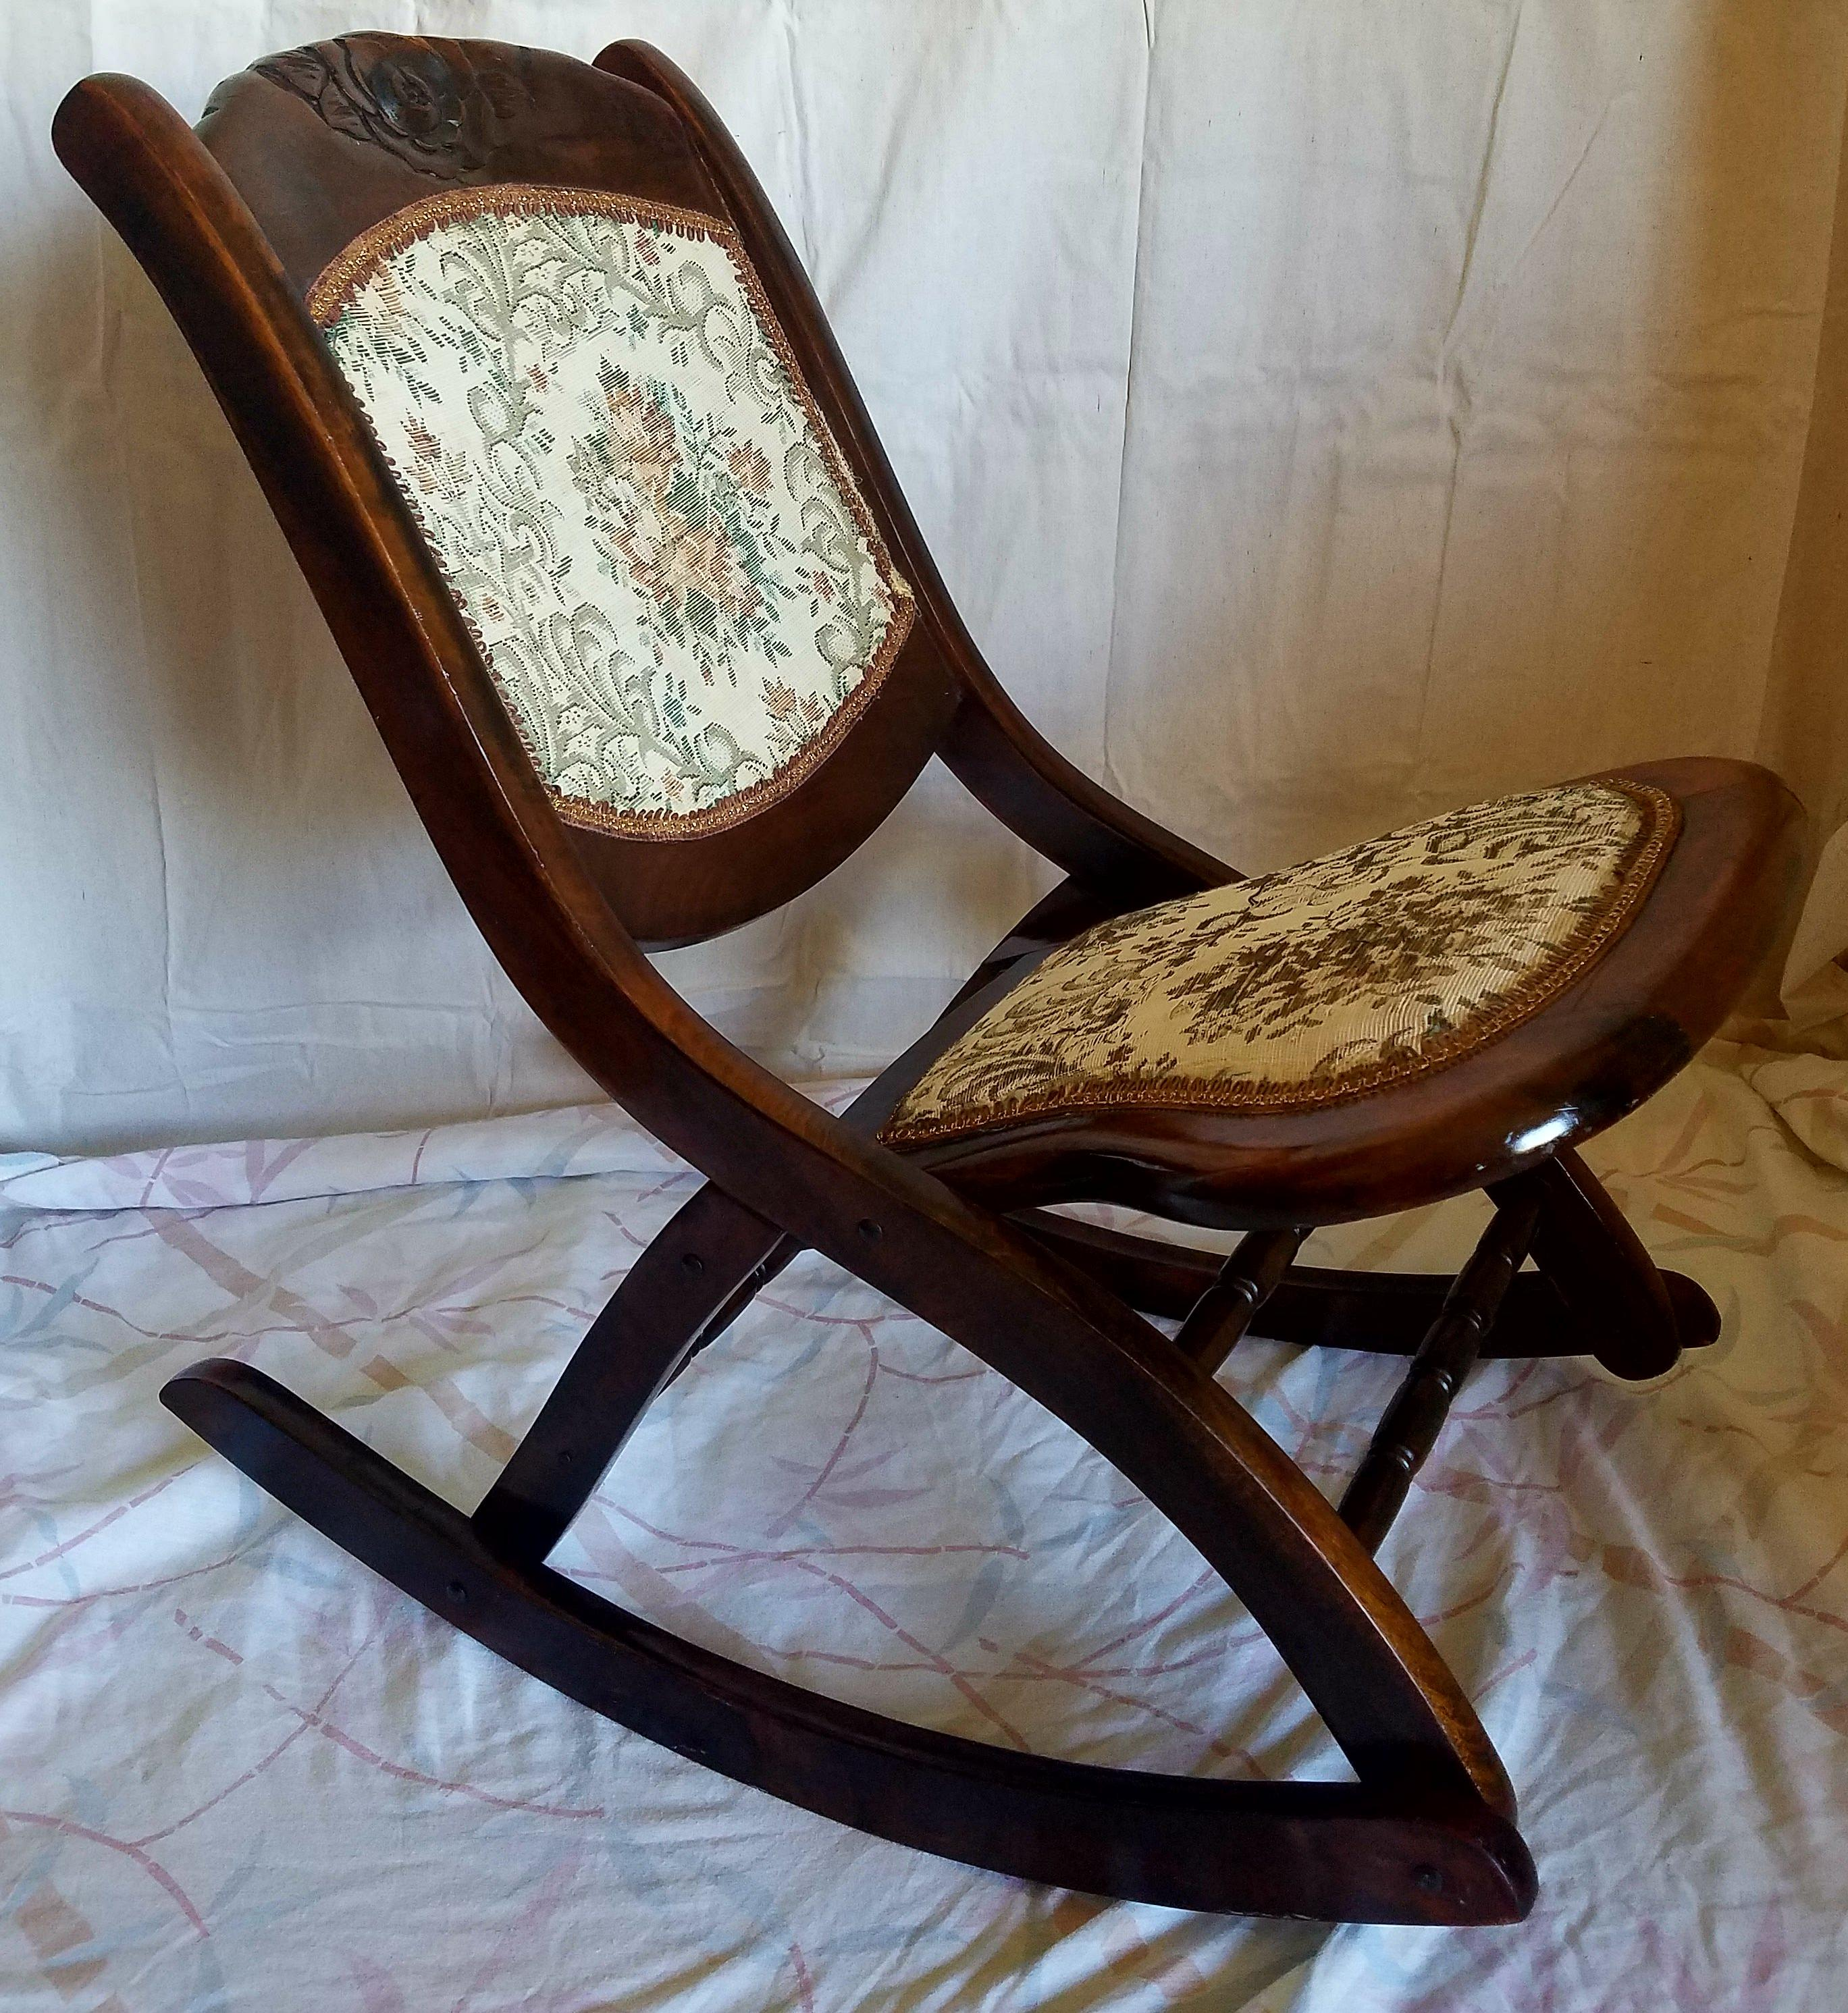 antique folding rocking chair Antique Folding Rocking Chair | Chairish antique folding rocking chair